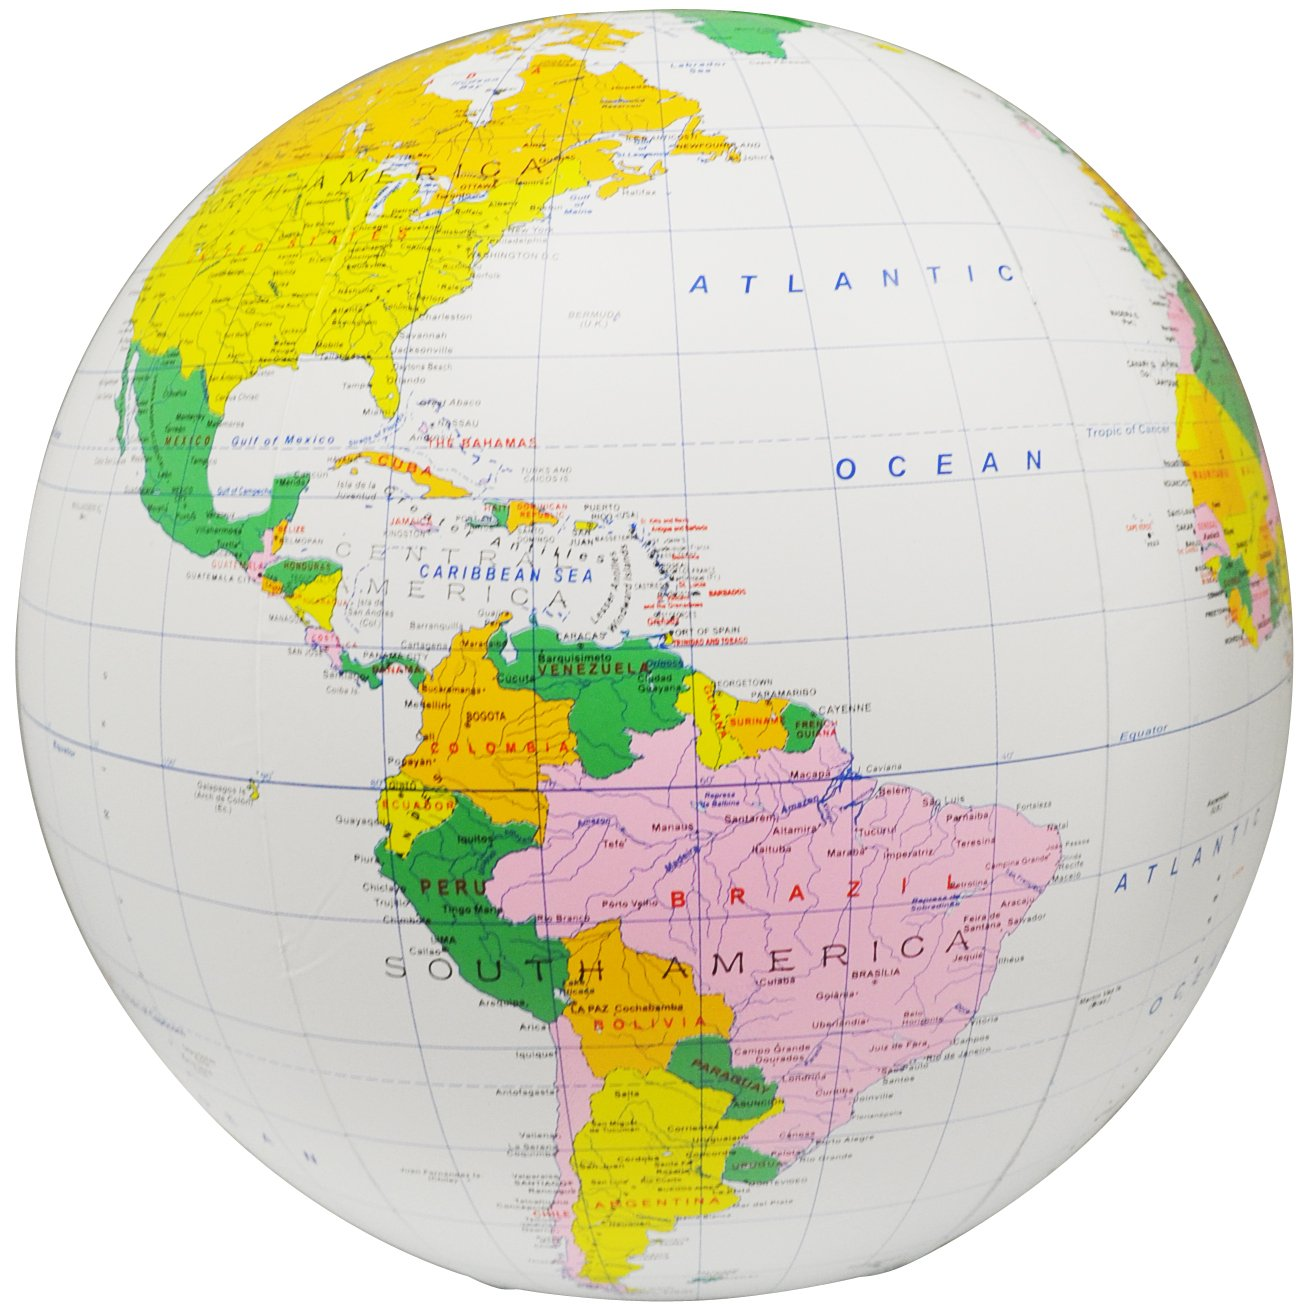 Inflatable Political World Globe with Accurate Map of Country Borders - Teacher and Student Supplies